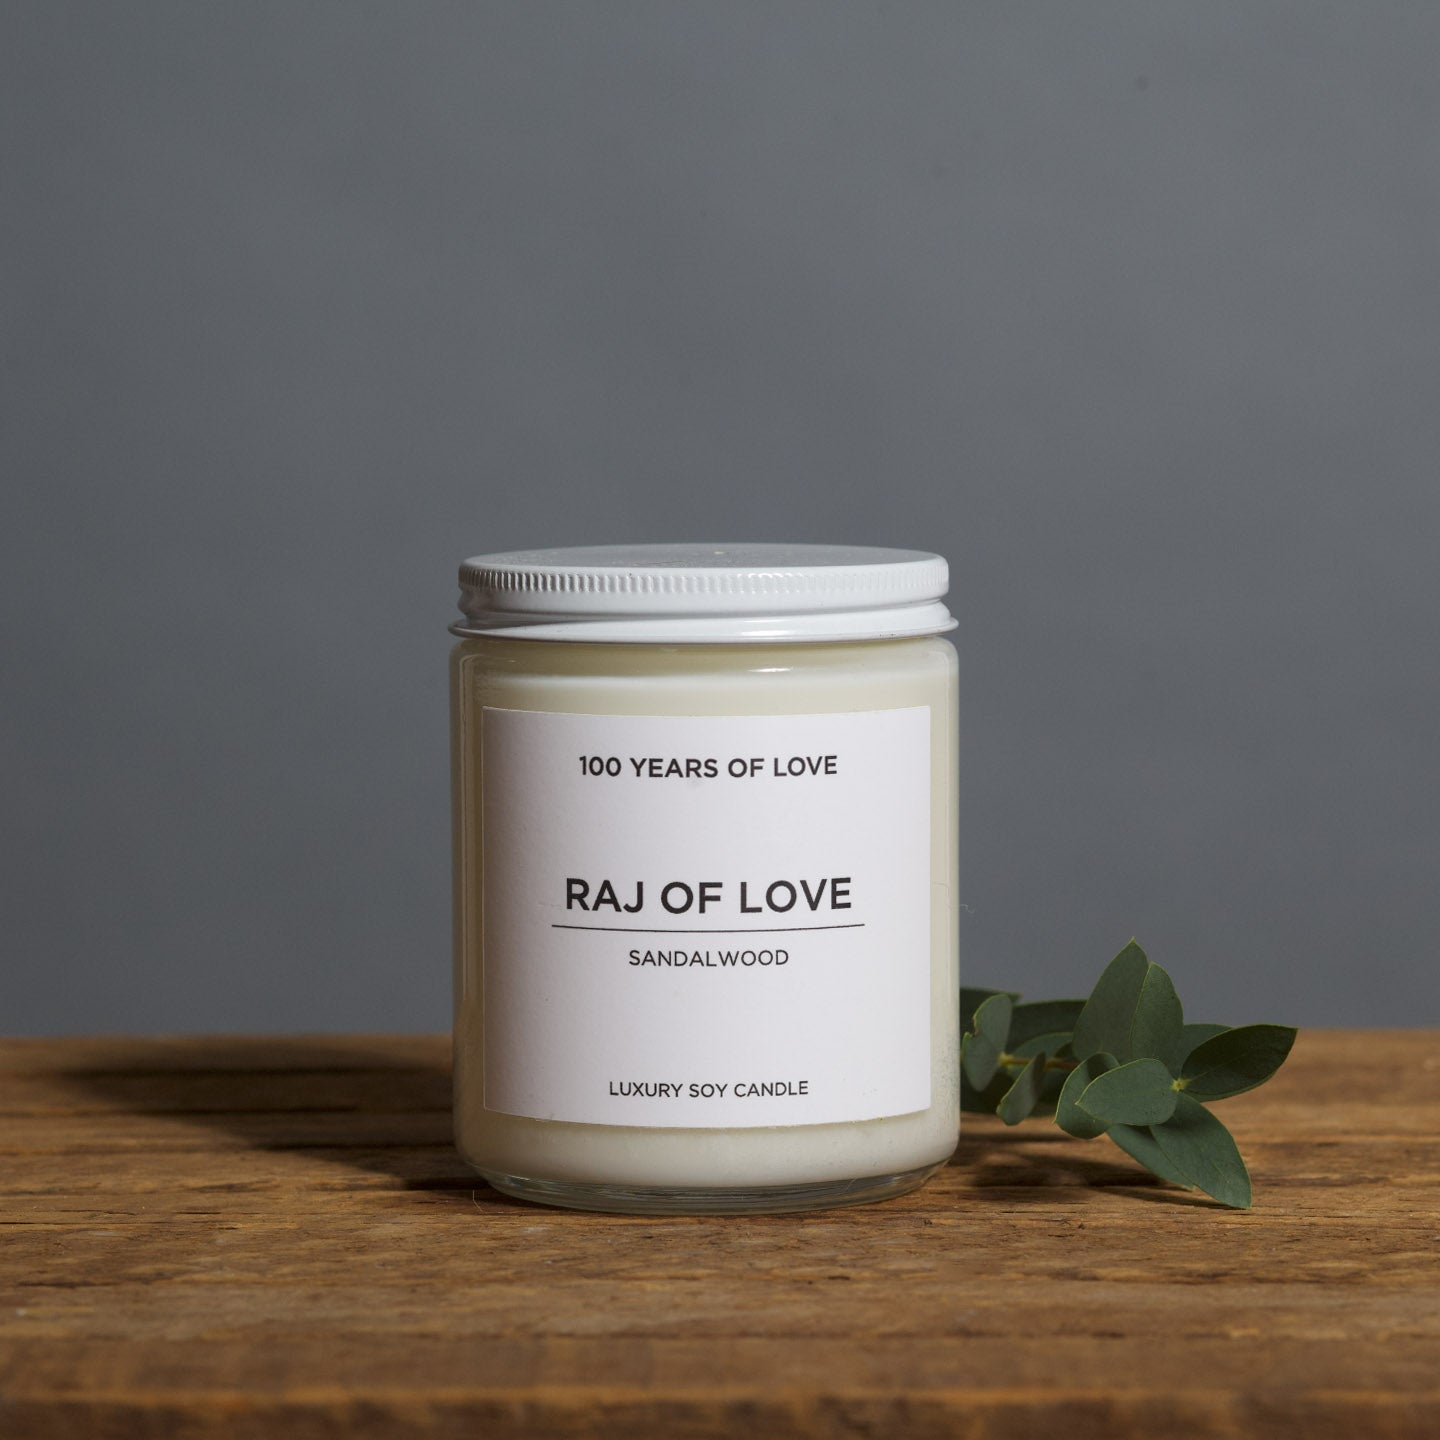 100 Years of Love Candles